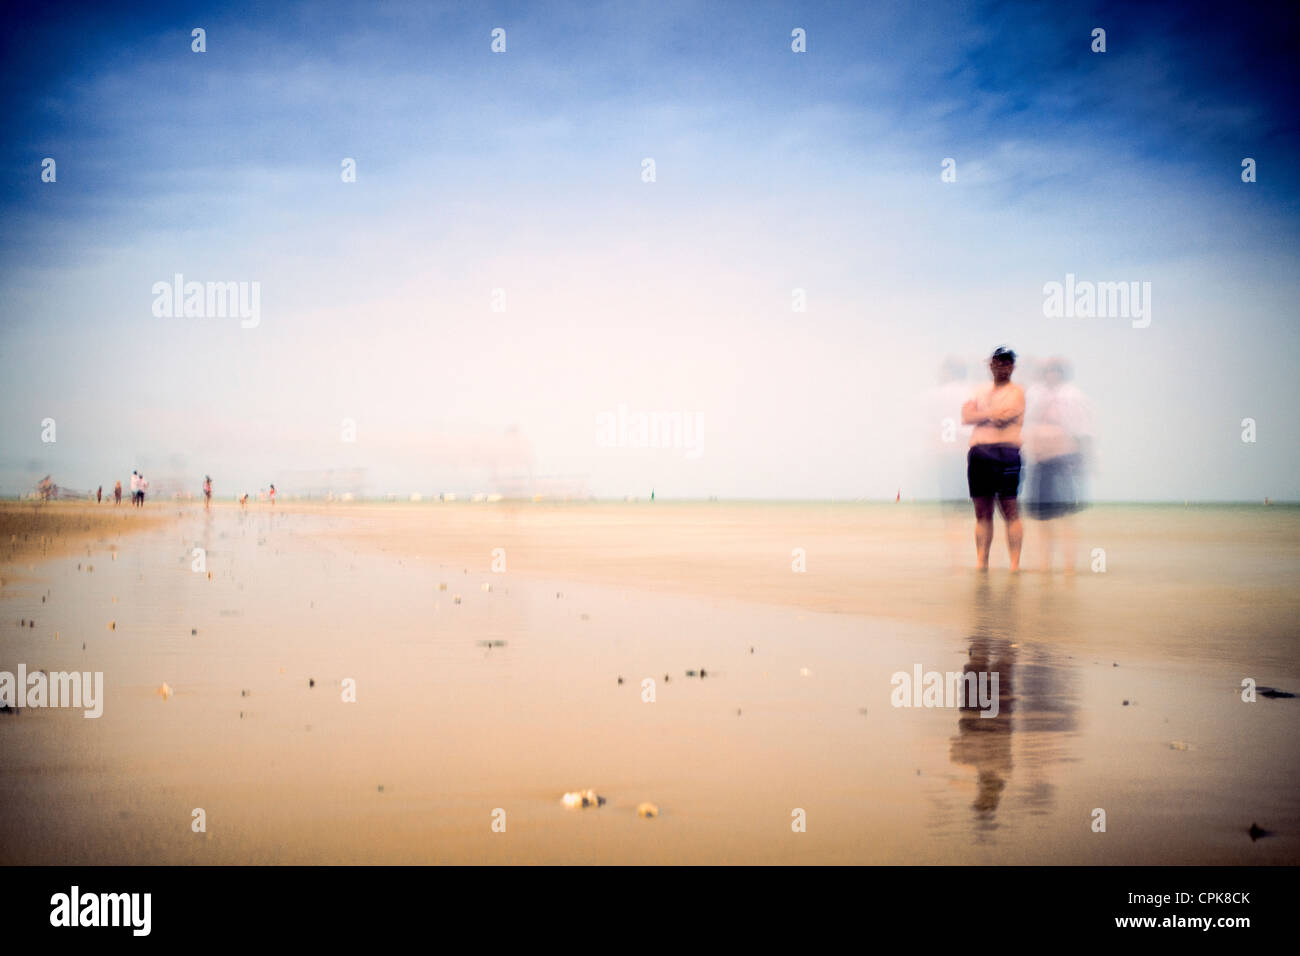 People on the beach, Sanlucar de Barrameda, Spain. Daylight long exposure shot by the use of neutral density filters. - Stock Image